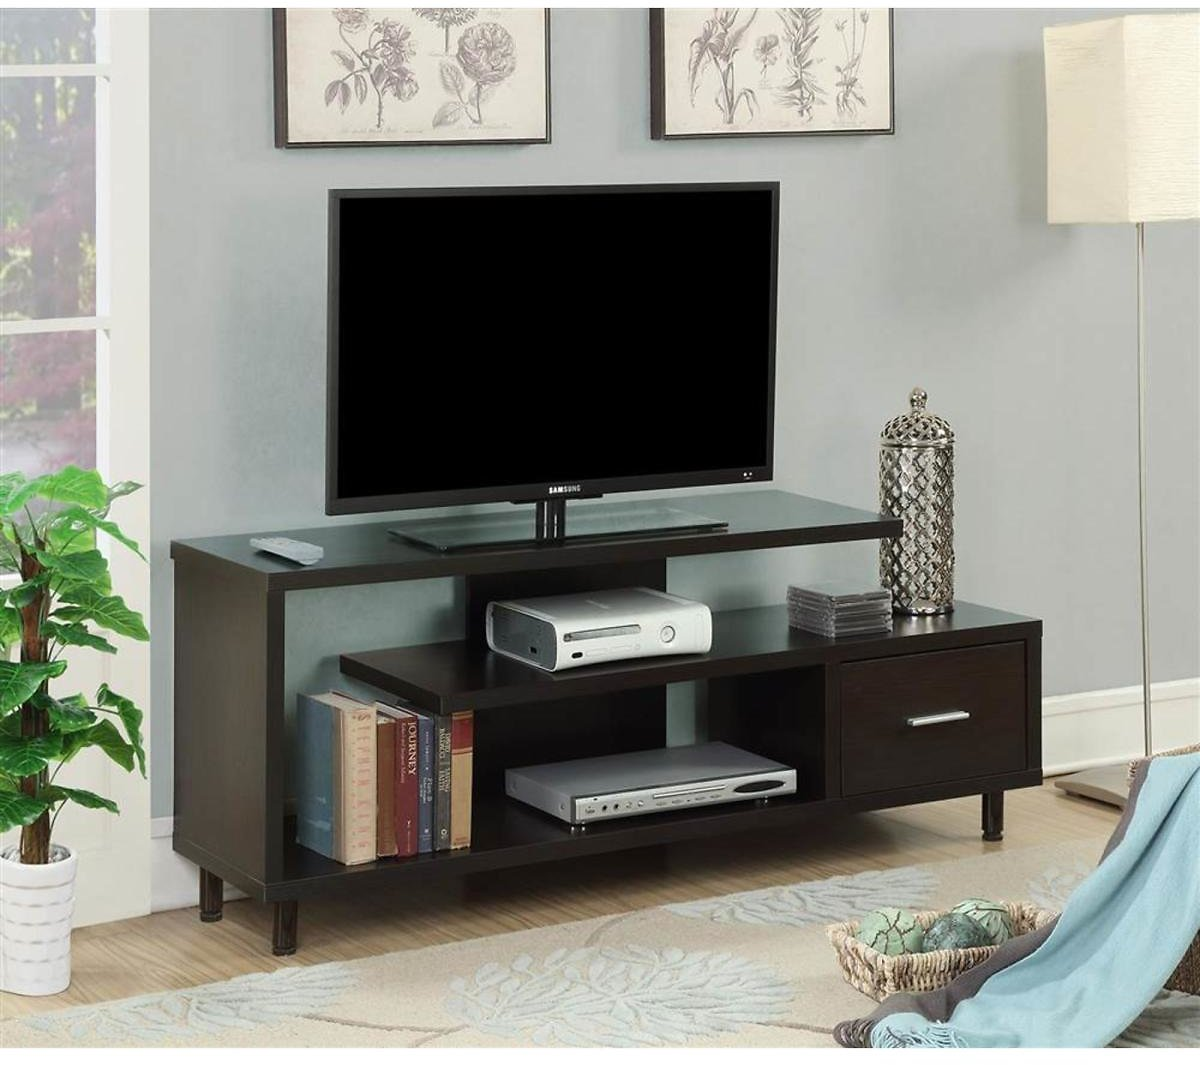 Convenience Concepts 60 In. TV Stand in Espresso